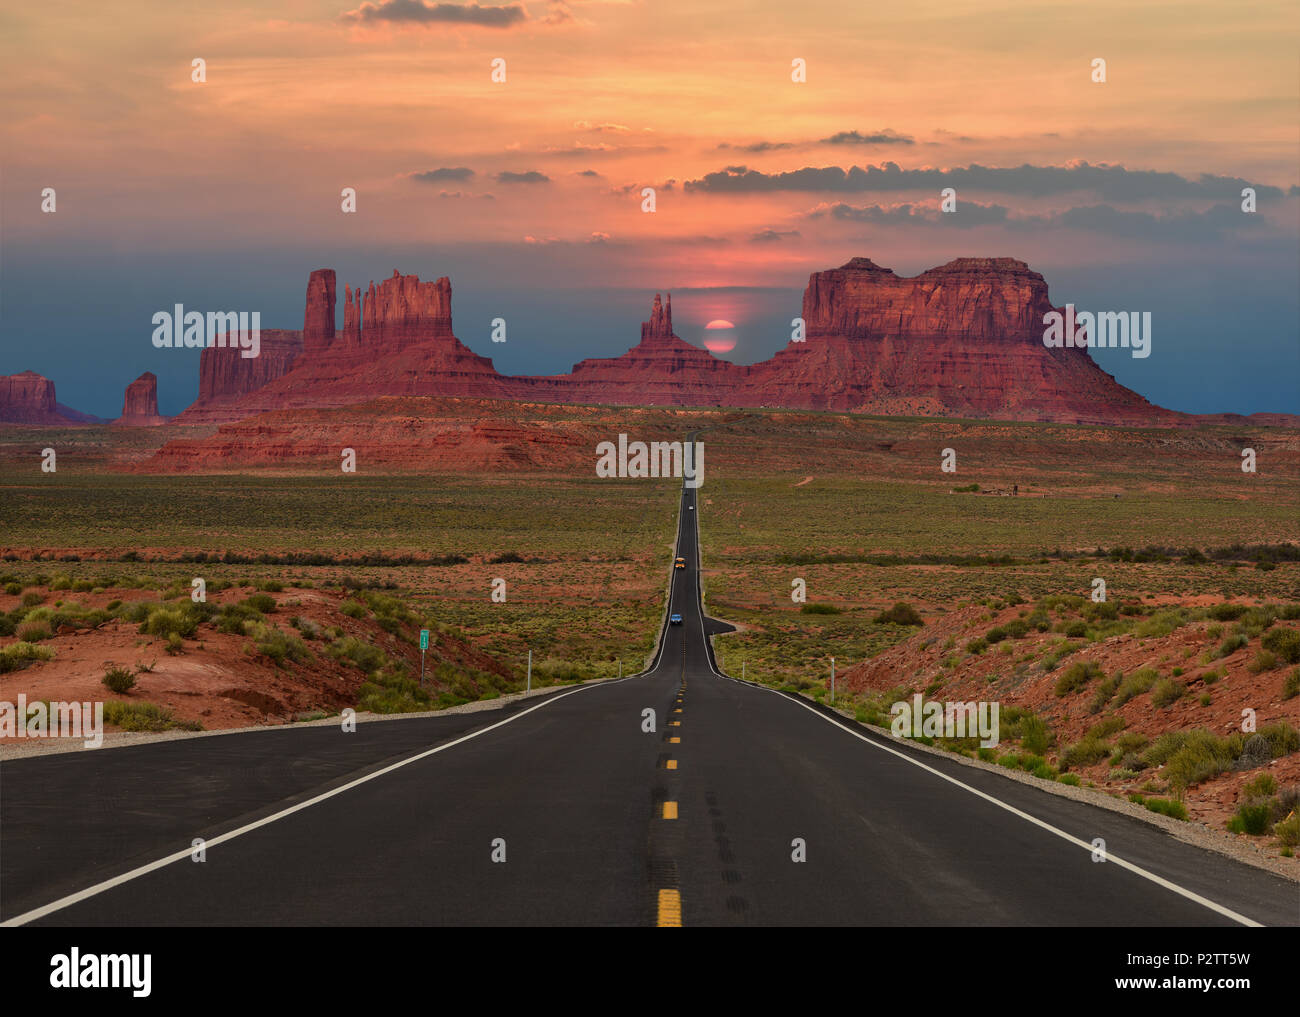 Scenic highway in Monument Valley Tribal Park in Arizona-Utah border, U.S.A. at sunset. - Stock Image